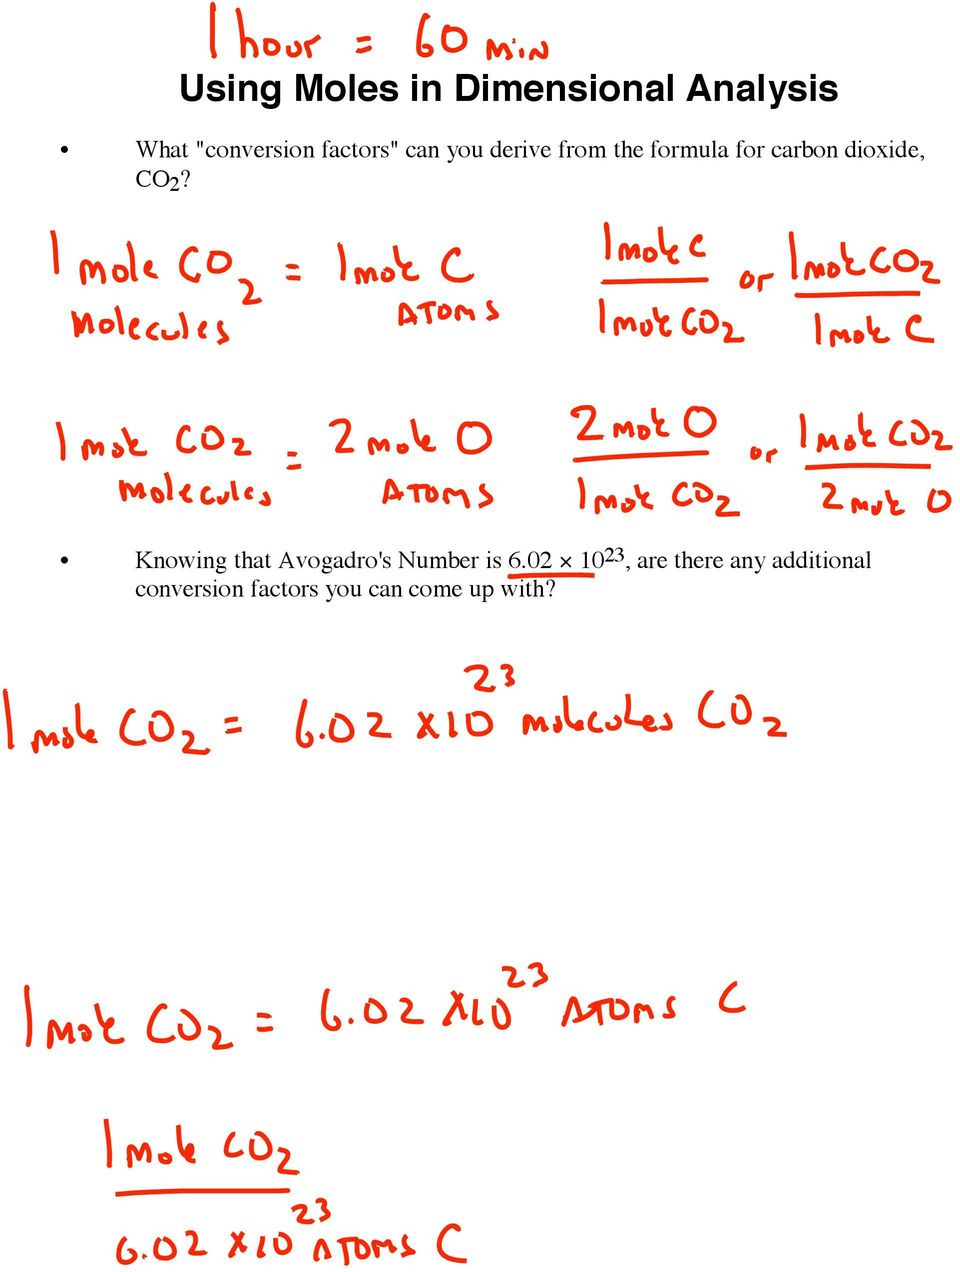 dioxide, CO 2? Knowing that Avogadro's Number is 6.